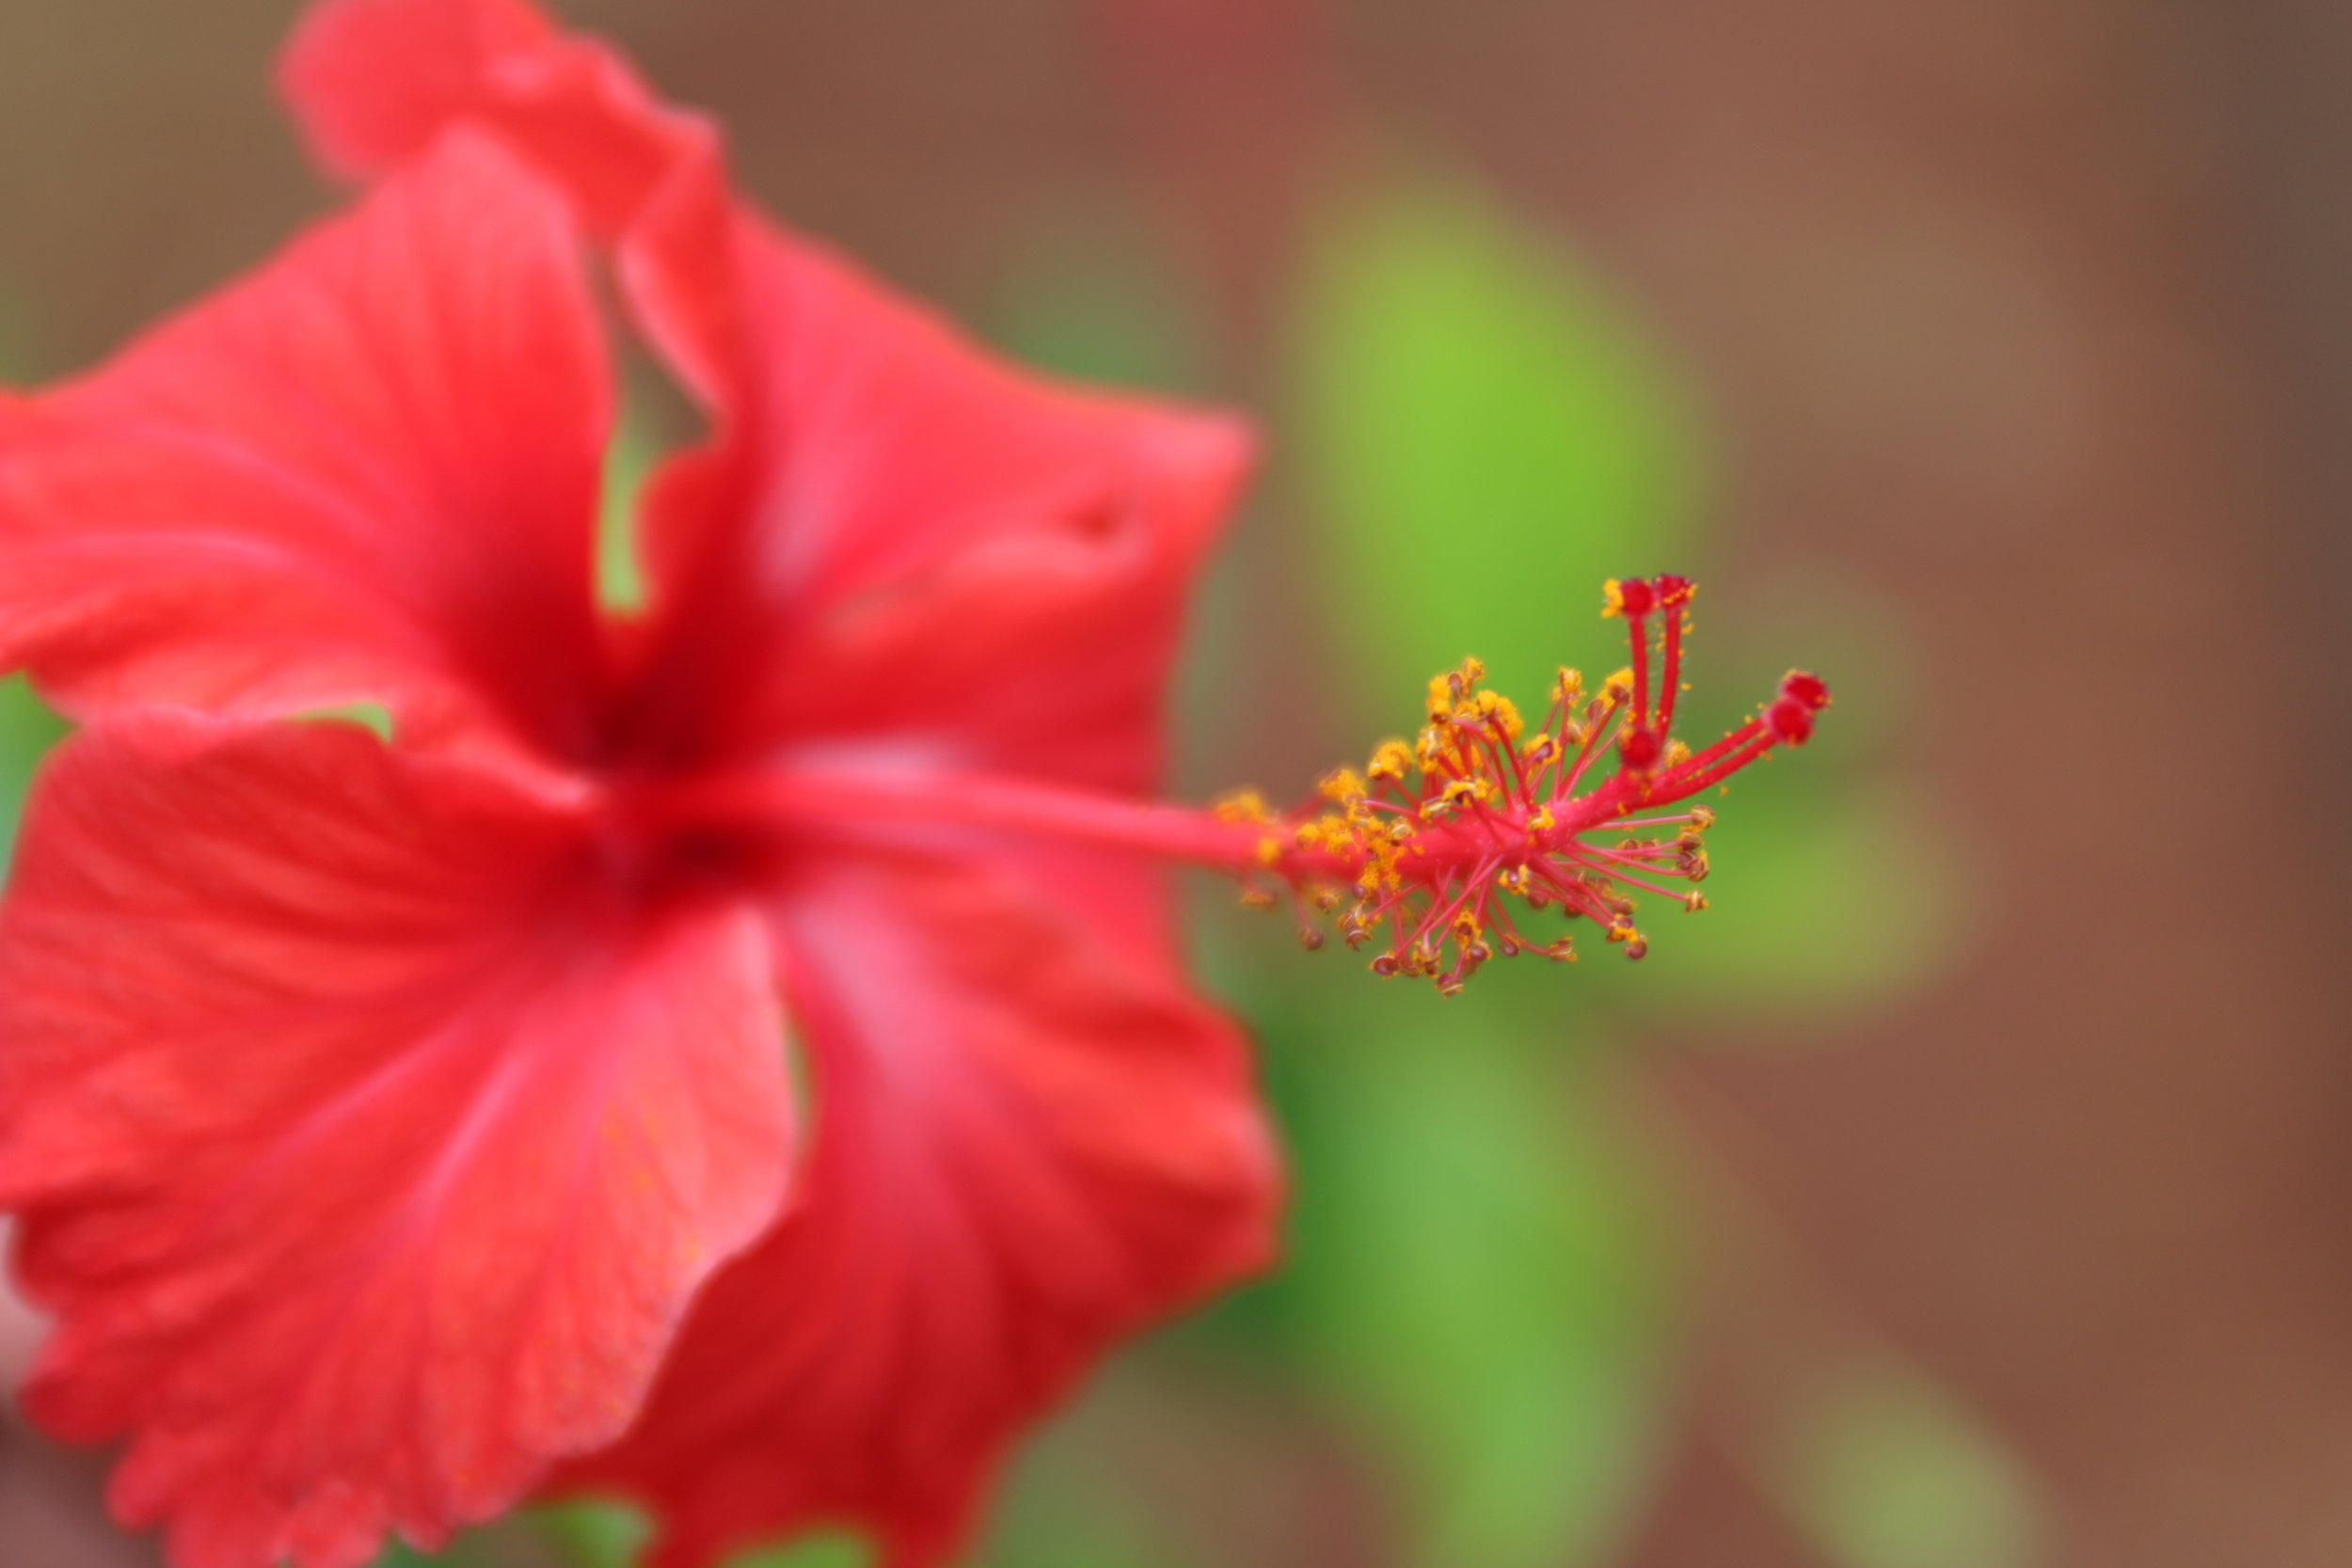 Then to throw you for a loop,I'm inserting this picture of this lovely Hibiscus flower. Before I post another photo of us :)